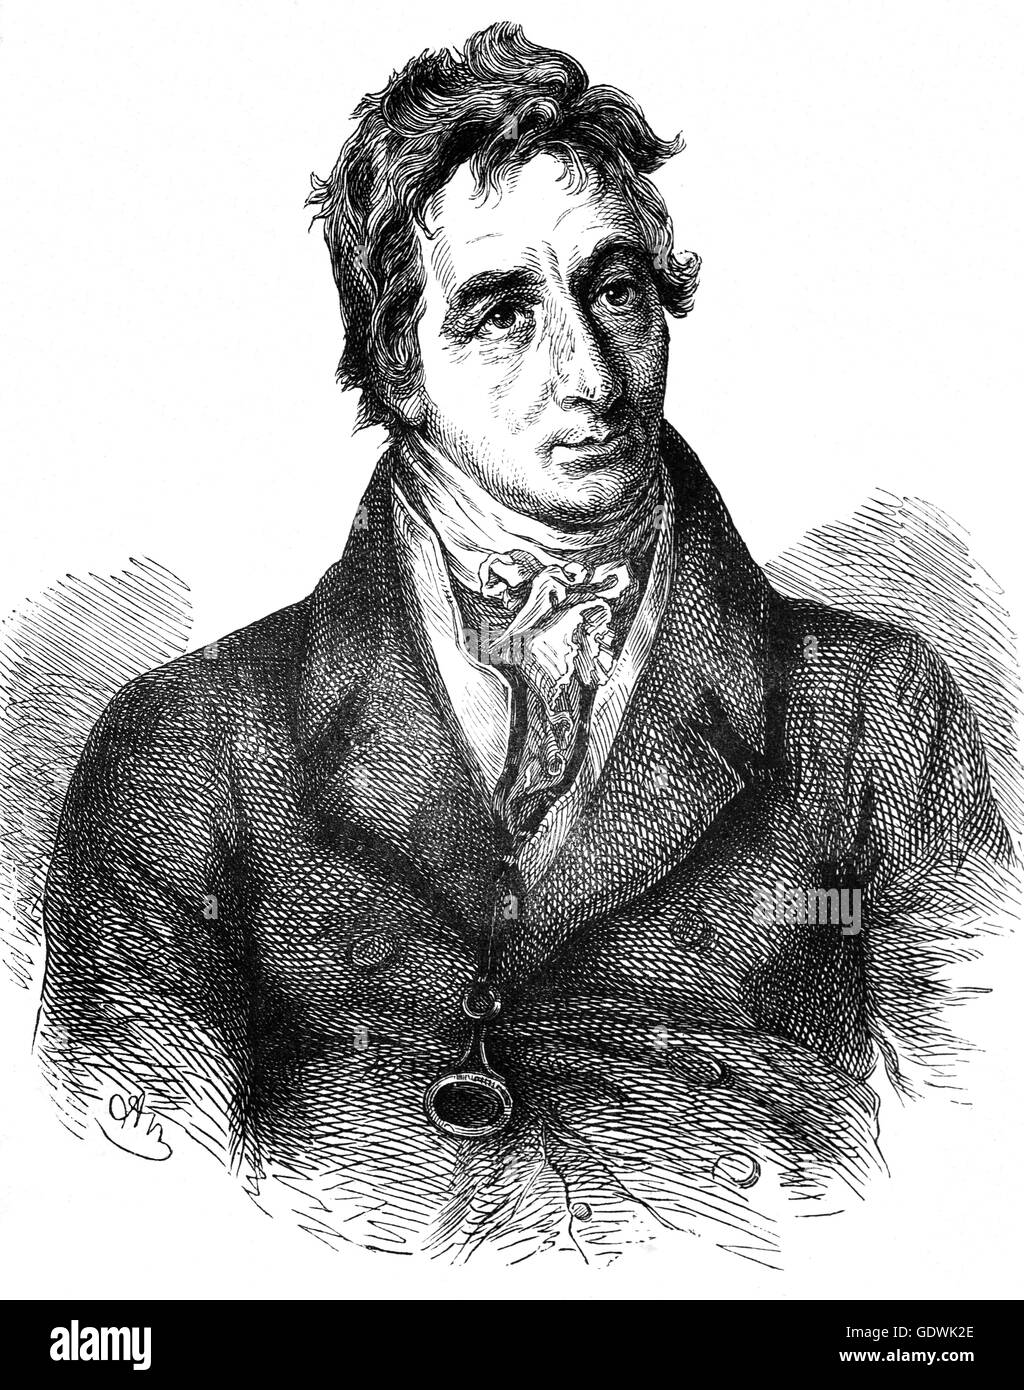 Henry Grattan (1746 – 1820) was an Irish politician and member of the Irish House of Commons, who campaigned for - Stock Image